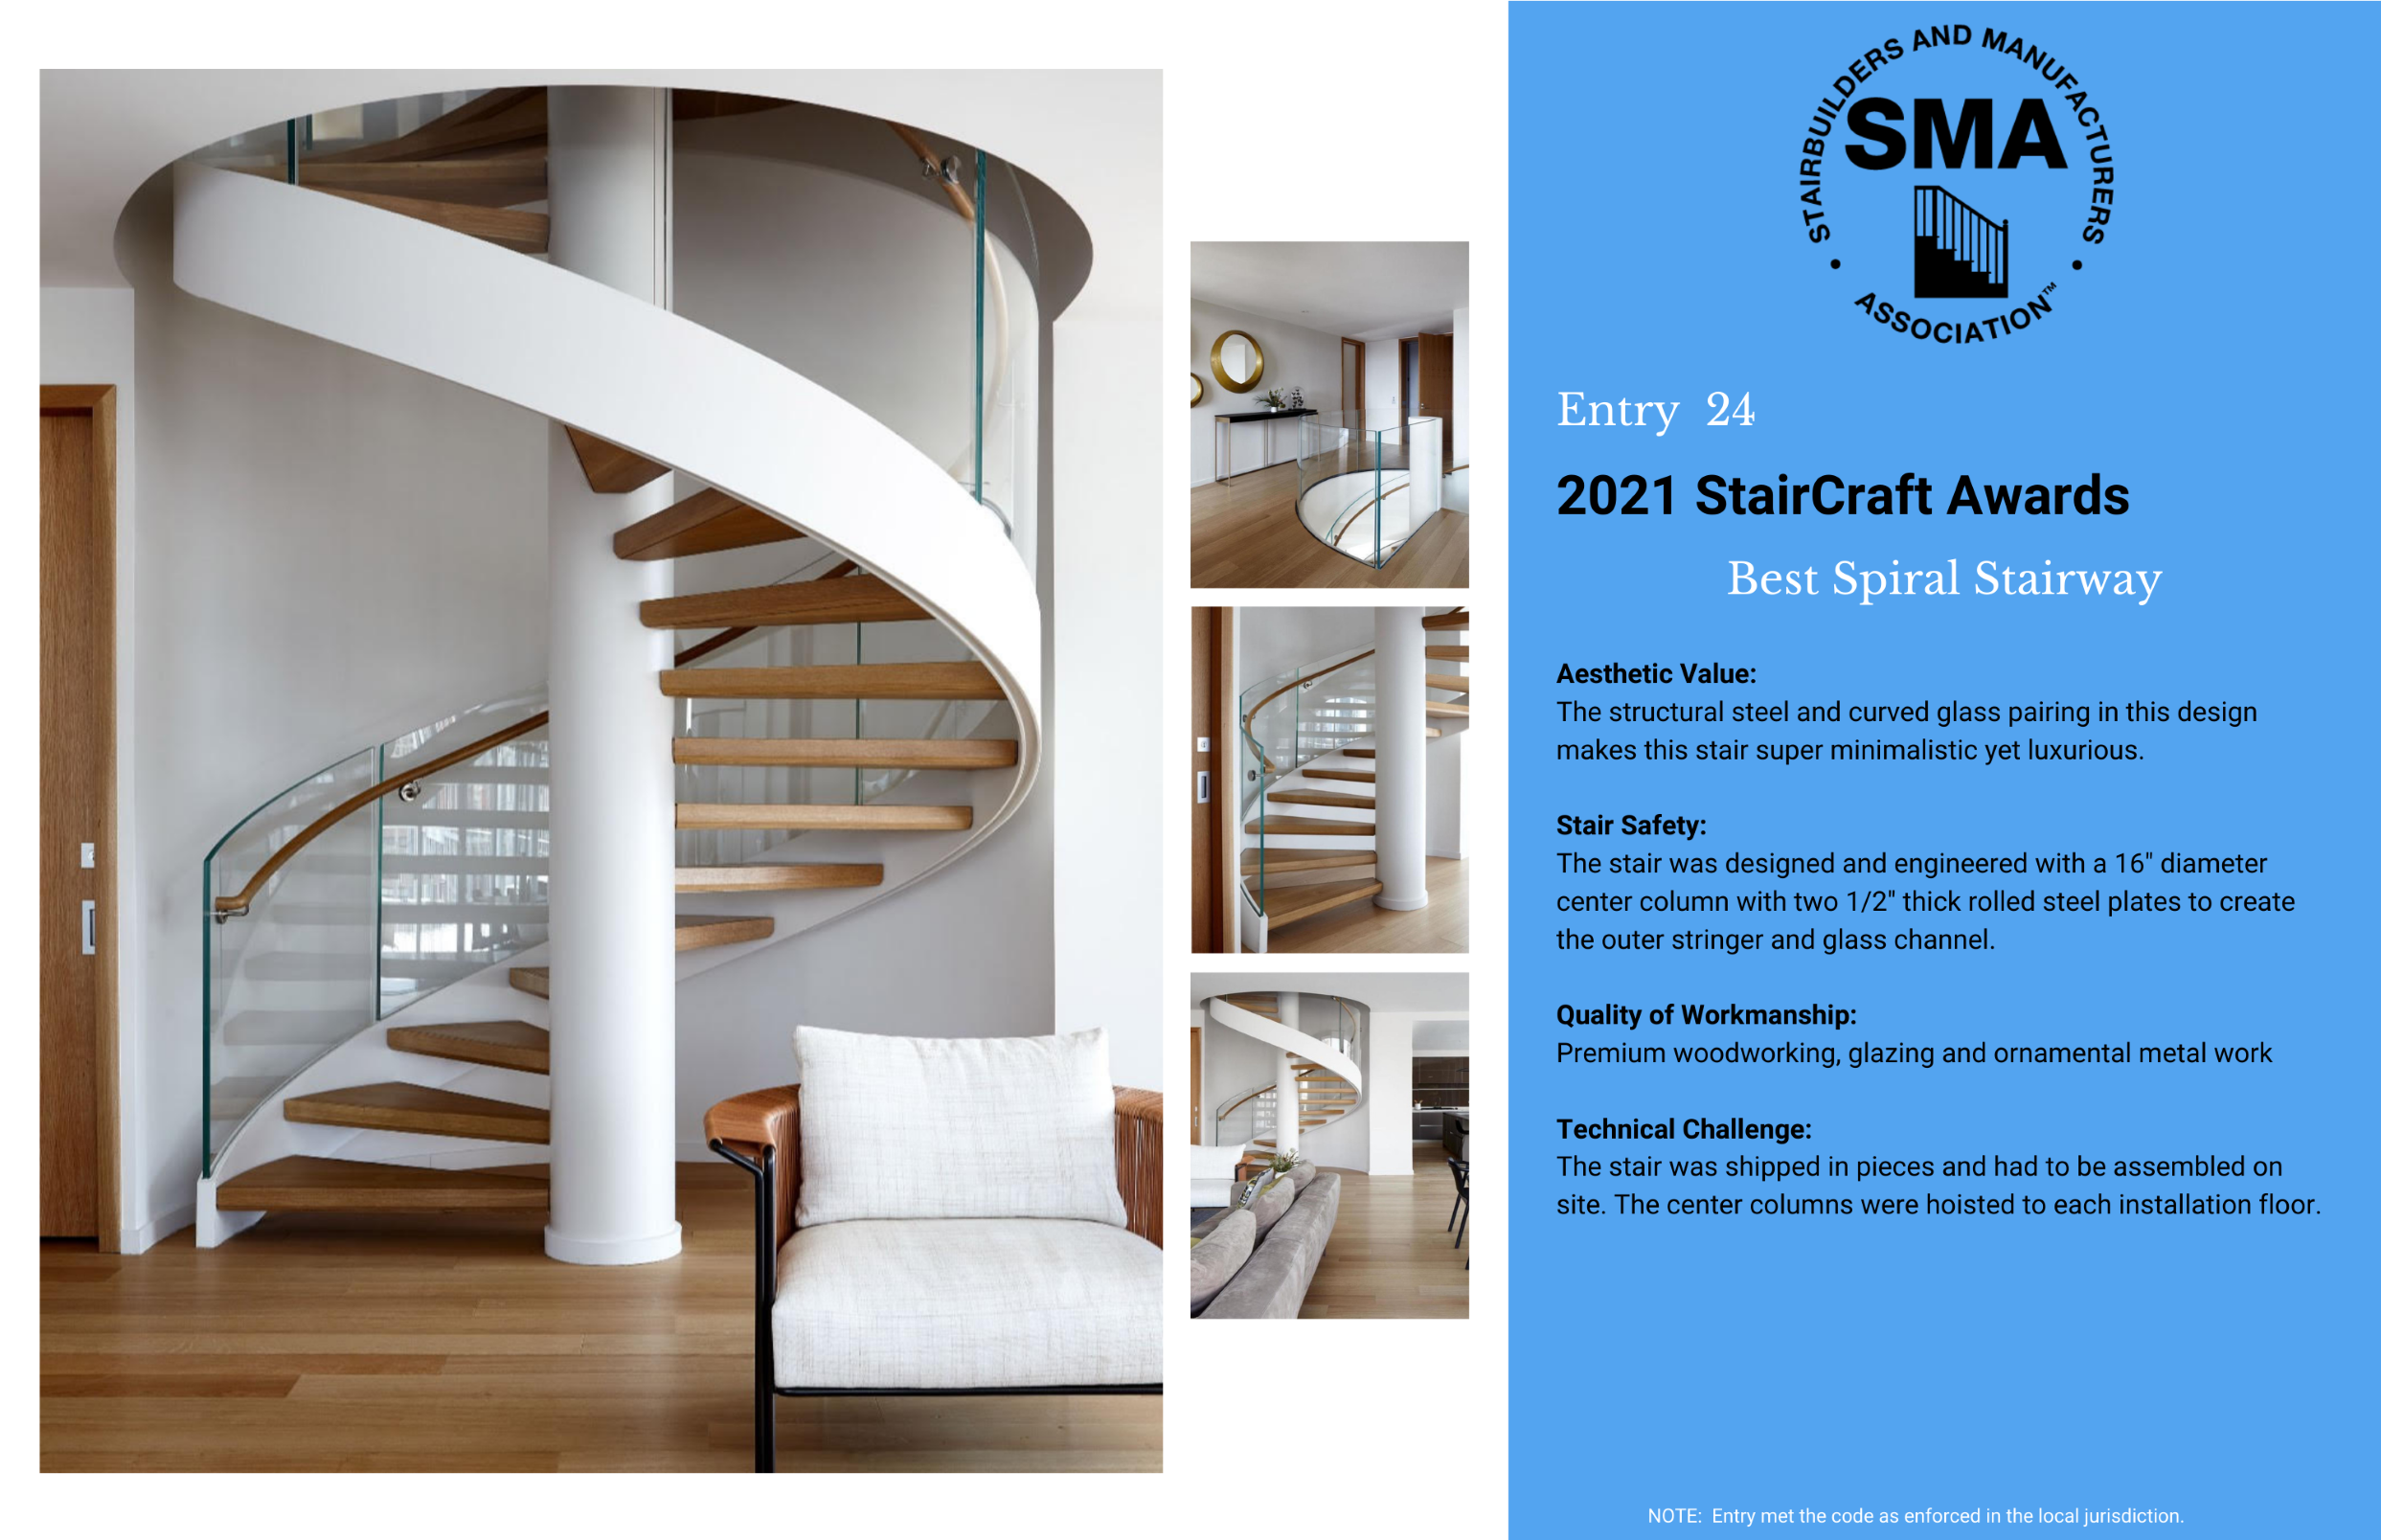 2021 StairCraft Awards Entry 24